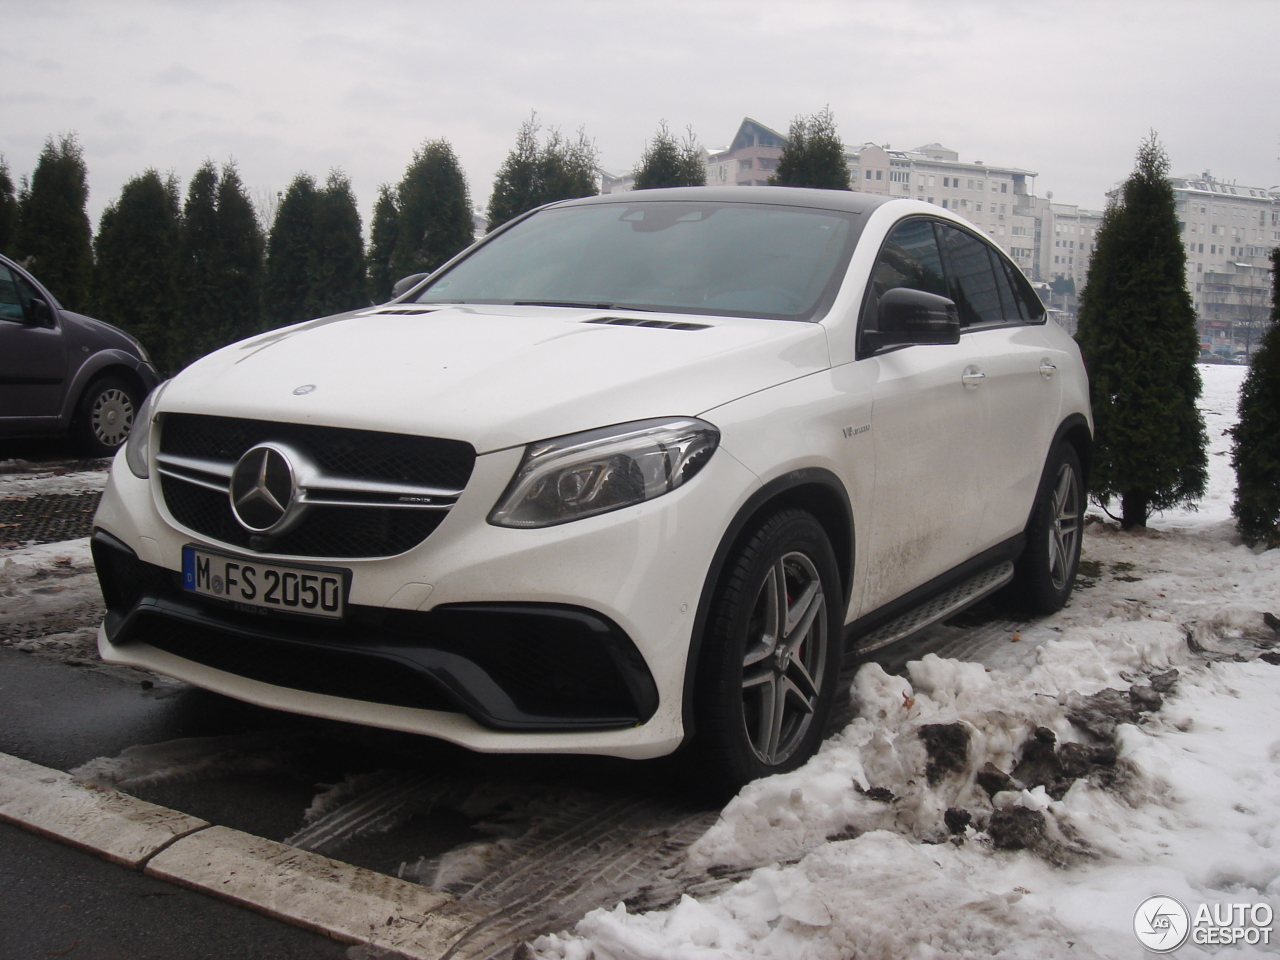 mercedes amg gle 63 s coup 31 january 2016 autogespot. Black Bedroom Furniture Sets. Home Design Ideas